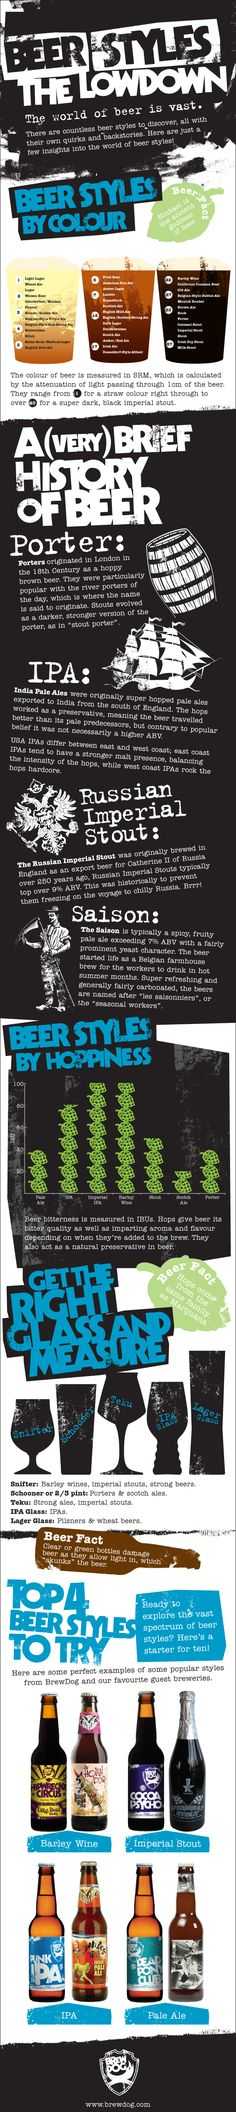 Craft beer styles infographic from BrewDog